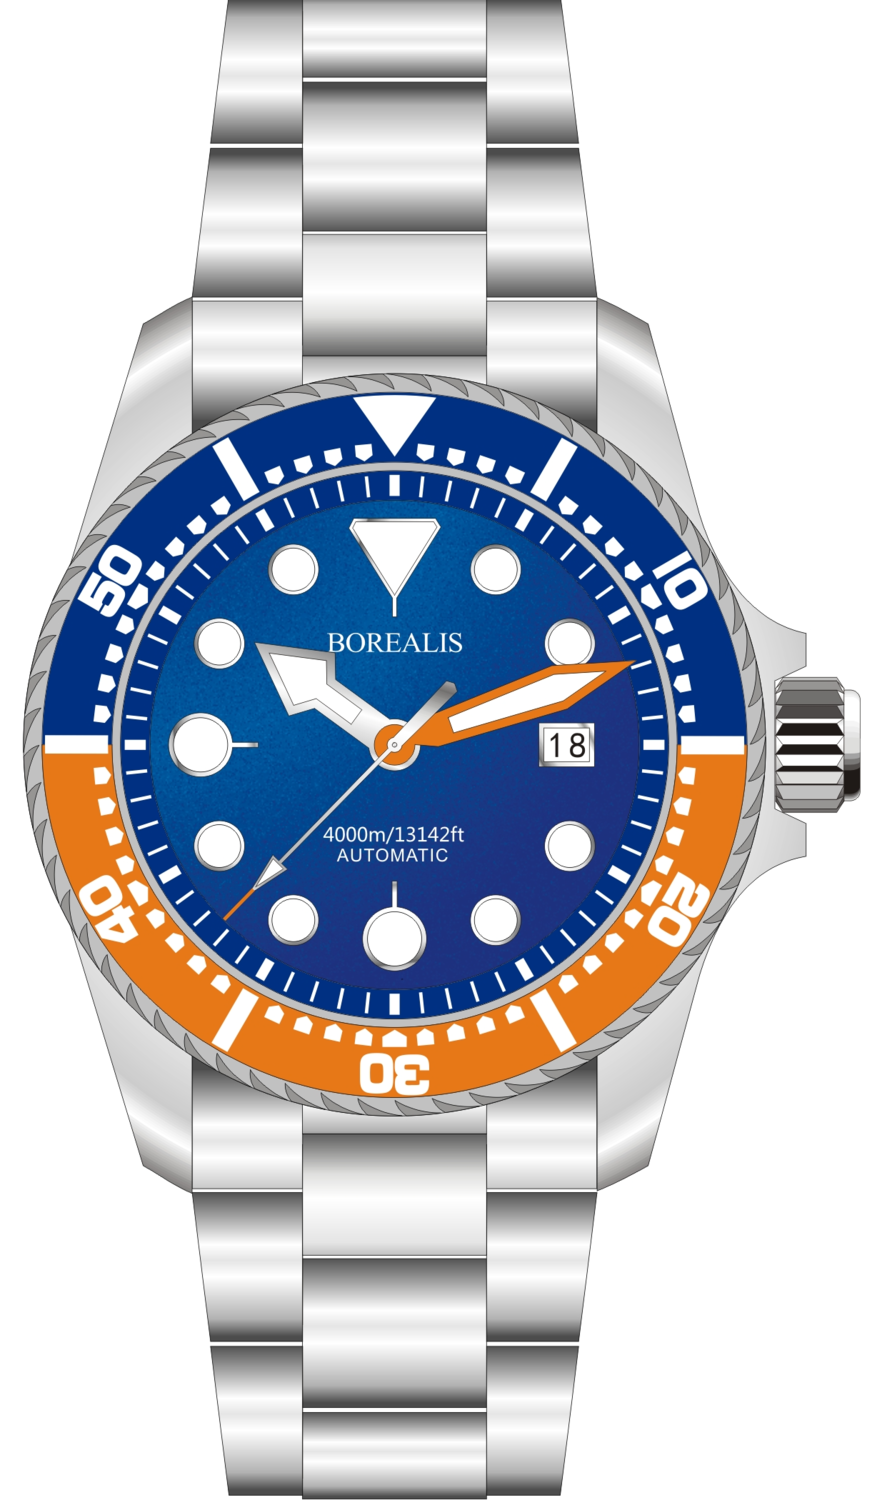 Borealis Seafarer II Stainless Steel Blue Orange BGW9 Sapphire Turbine Style Grip Bezel 4000m Miyota 9015 Automatic Diver Watch